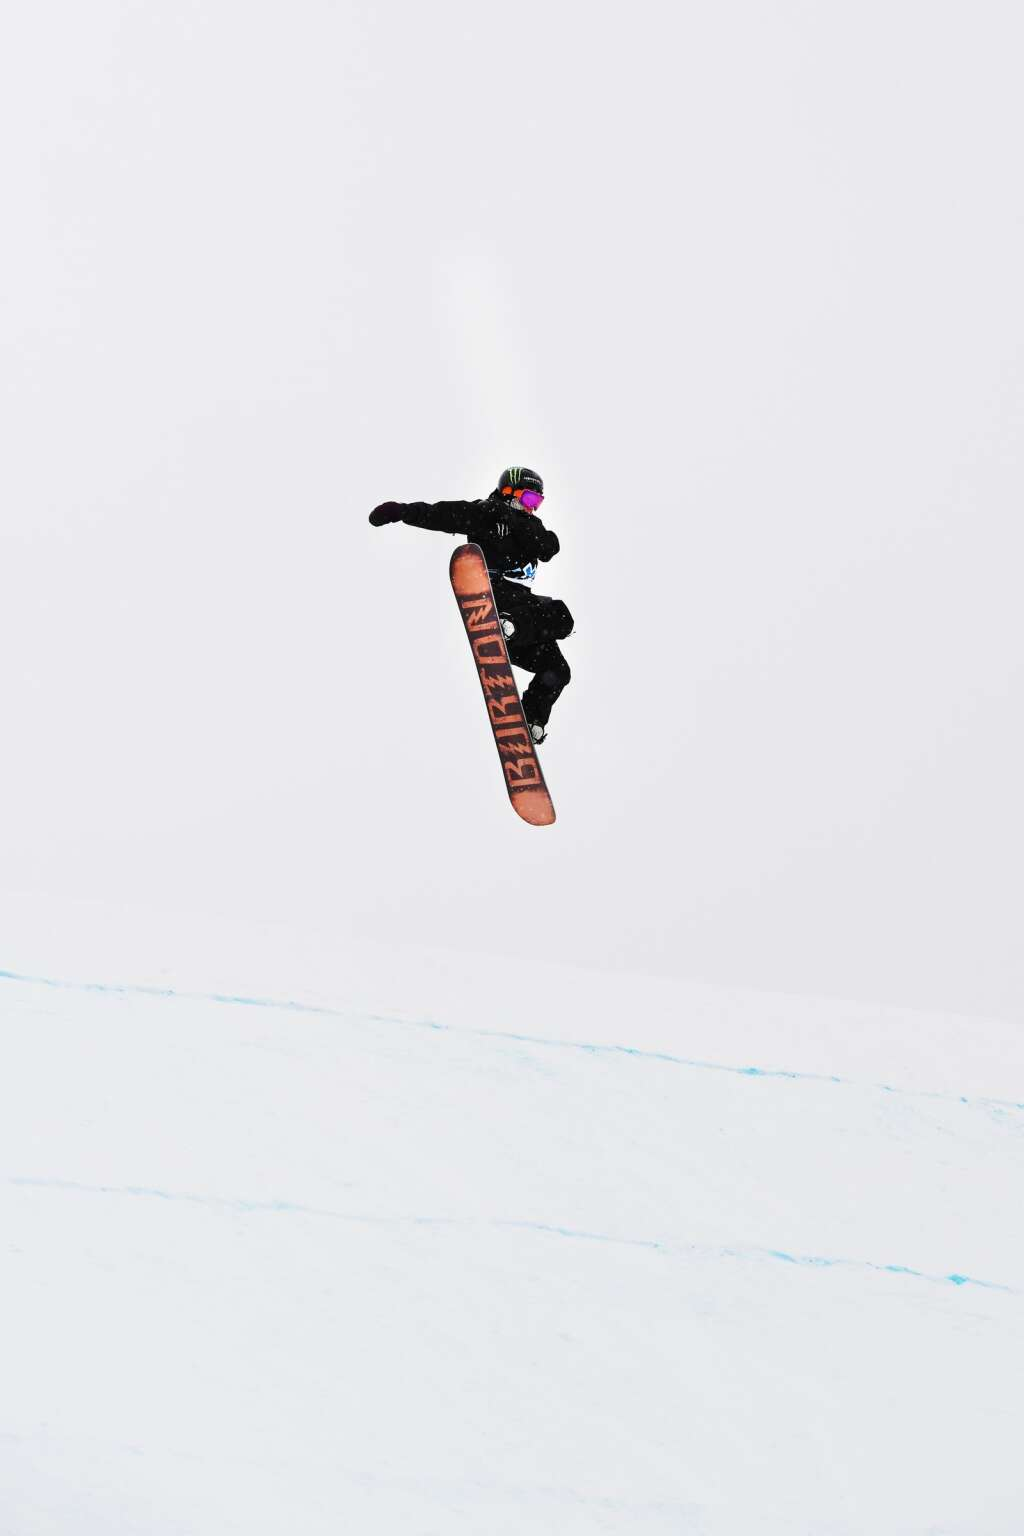 Darcy Sharpe competes in the Men's Snowboard Slopestyle qualifying event on Thursday, Jan. 23, 2020. (Kelsey Brunner/The Aspen Times)